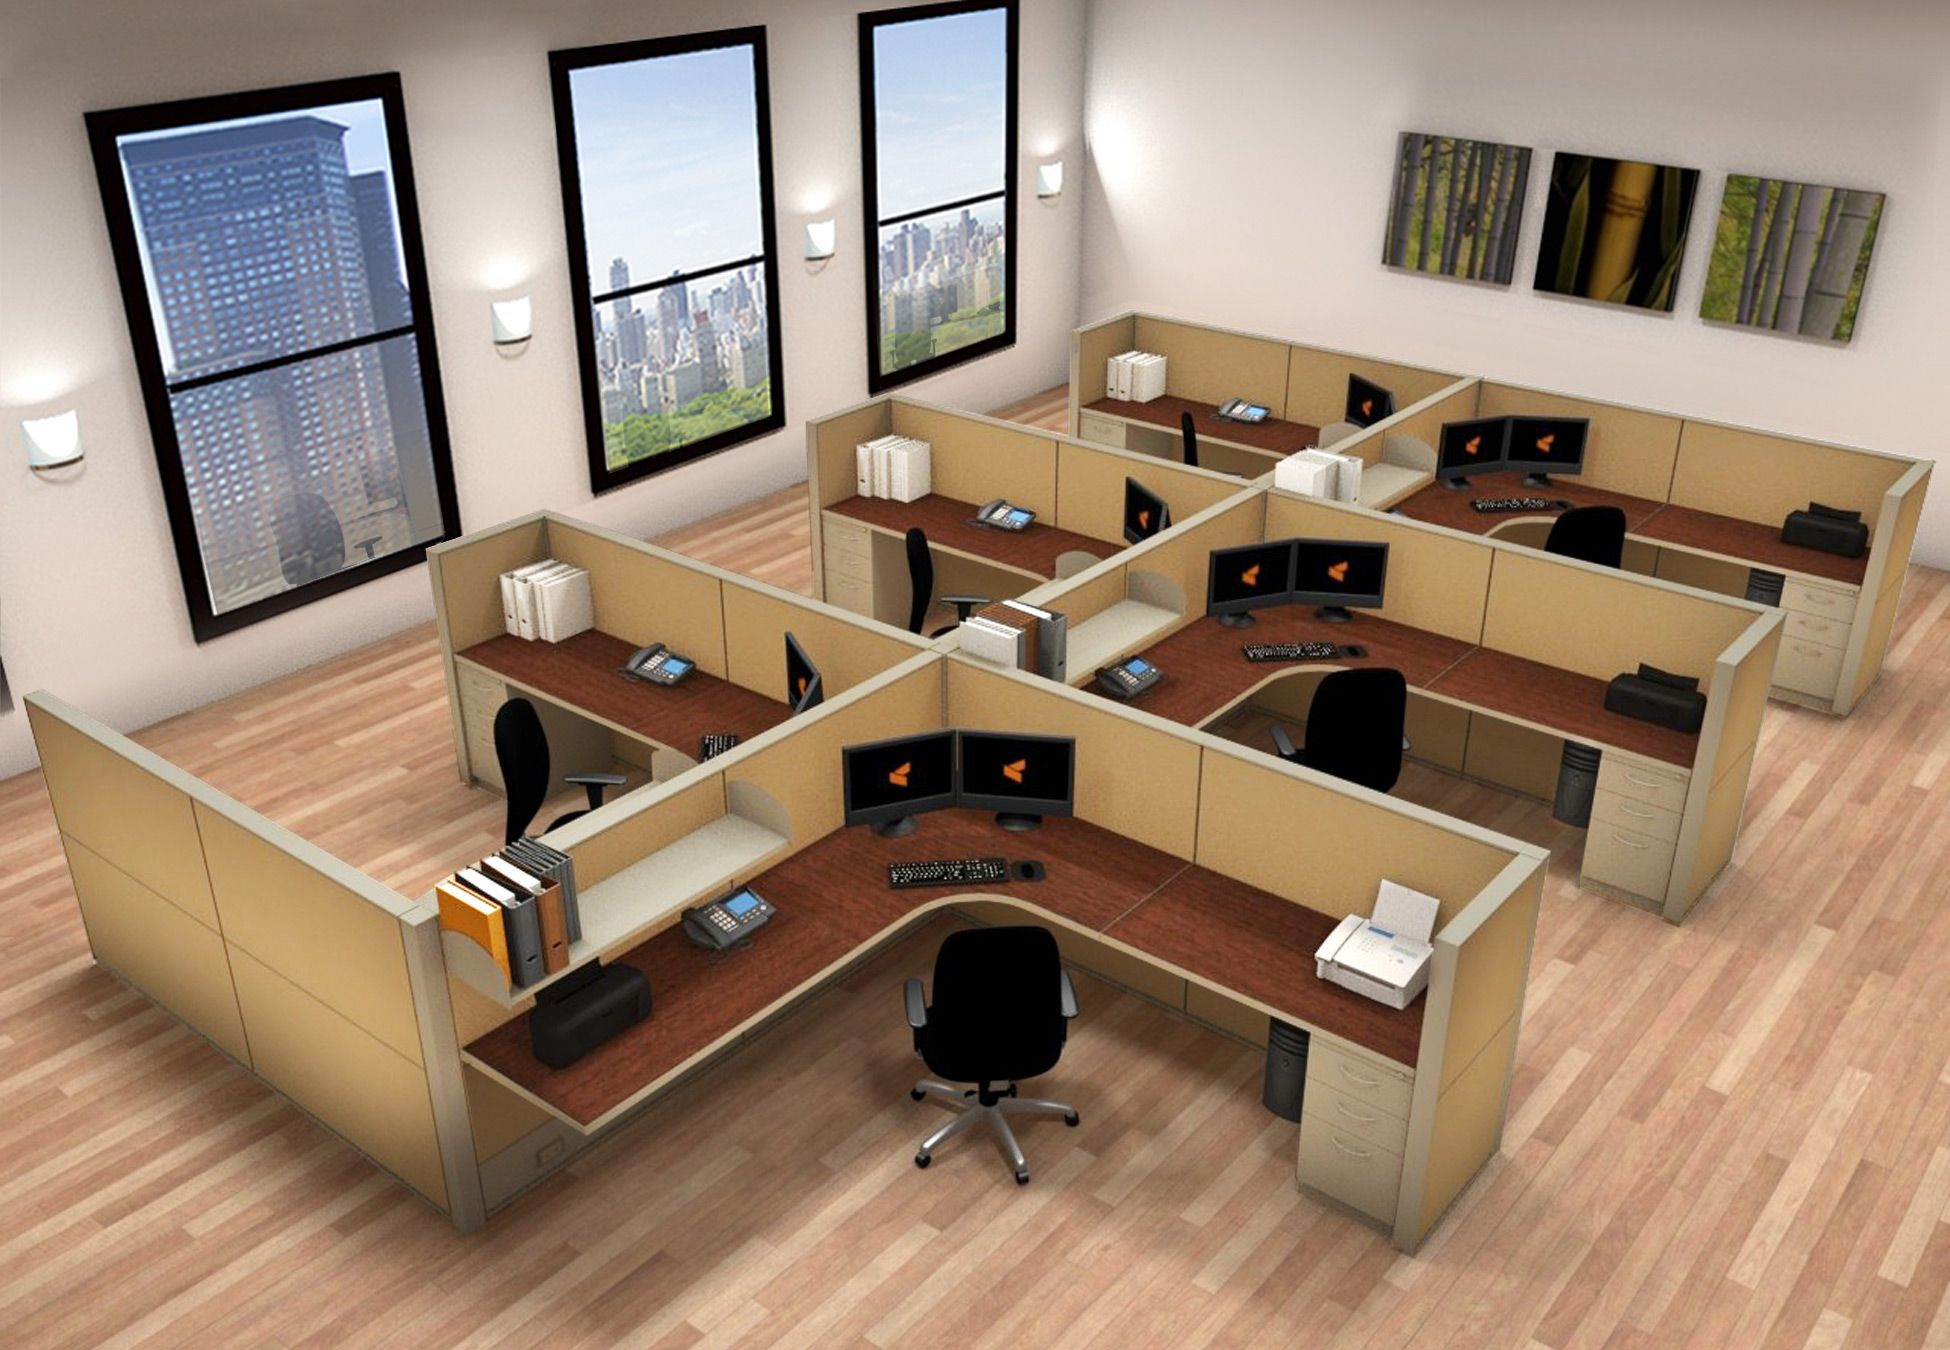 Image Result For 8x8 Workstations Furniture Workstation Home Decor